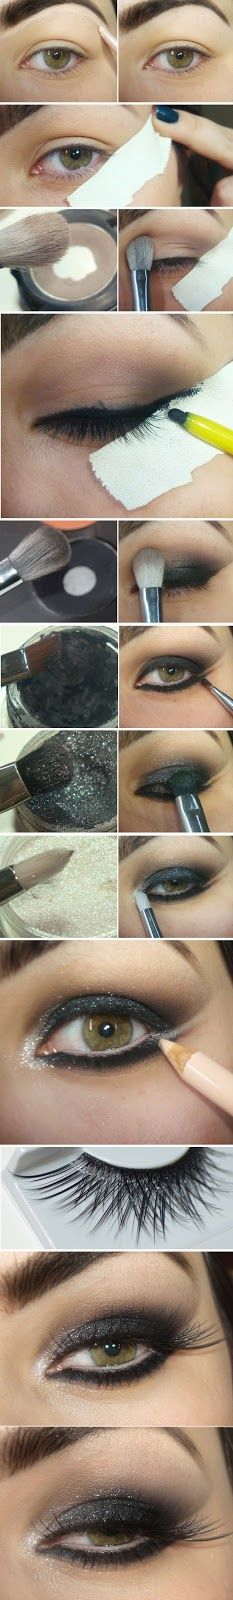 Black Shine Cat Eye Makeup Tutorials - Step by Step / Best LoLus Makeup Fashion http://thepageantplanet.com/category/hair-and-makeup/